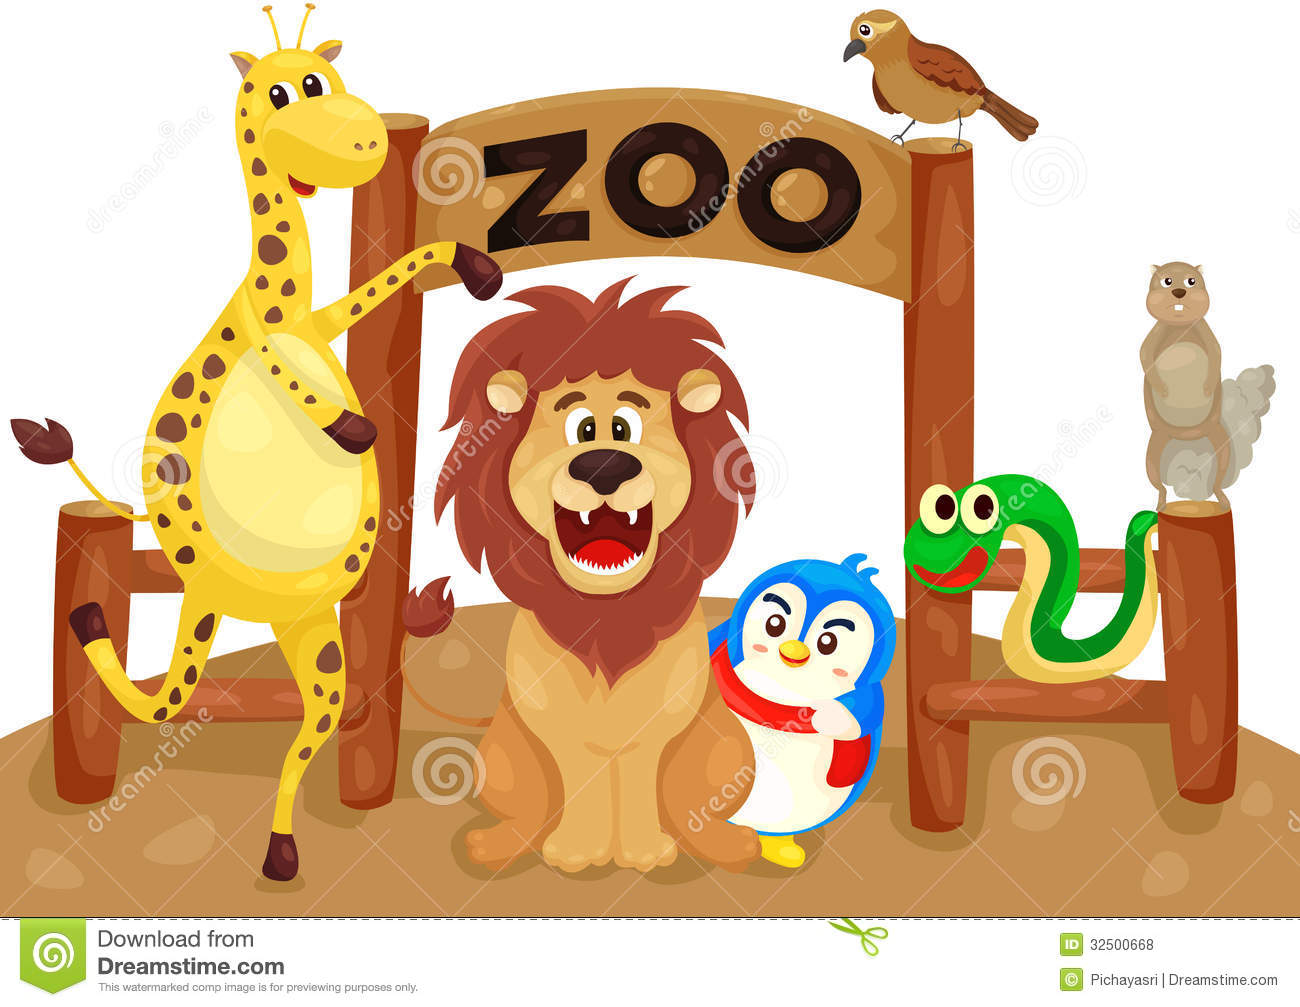 Zoo Sign Clipart Photos Good Pix Gallery-Zoo Sign Clipart Photos Good Pix Gallery-16